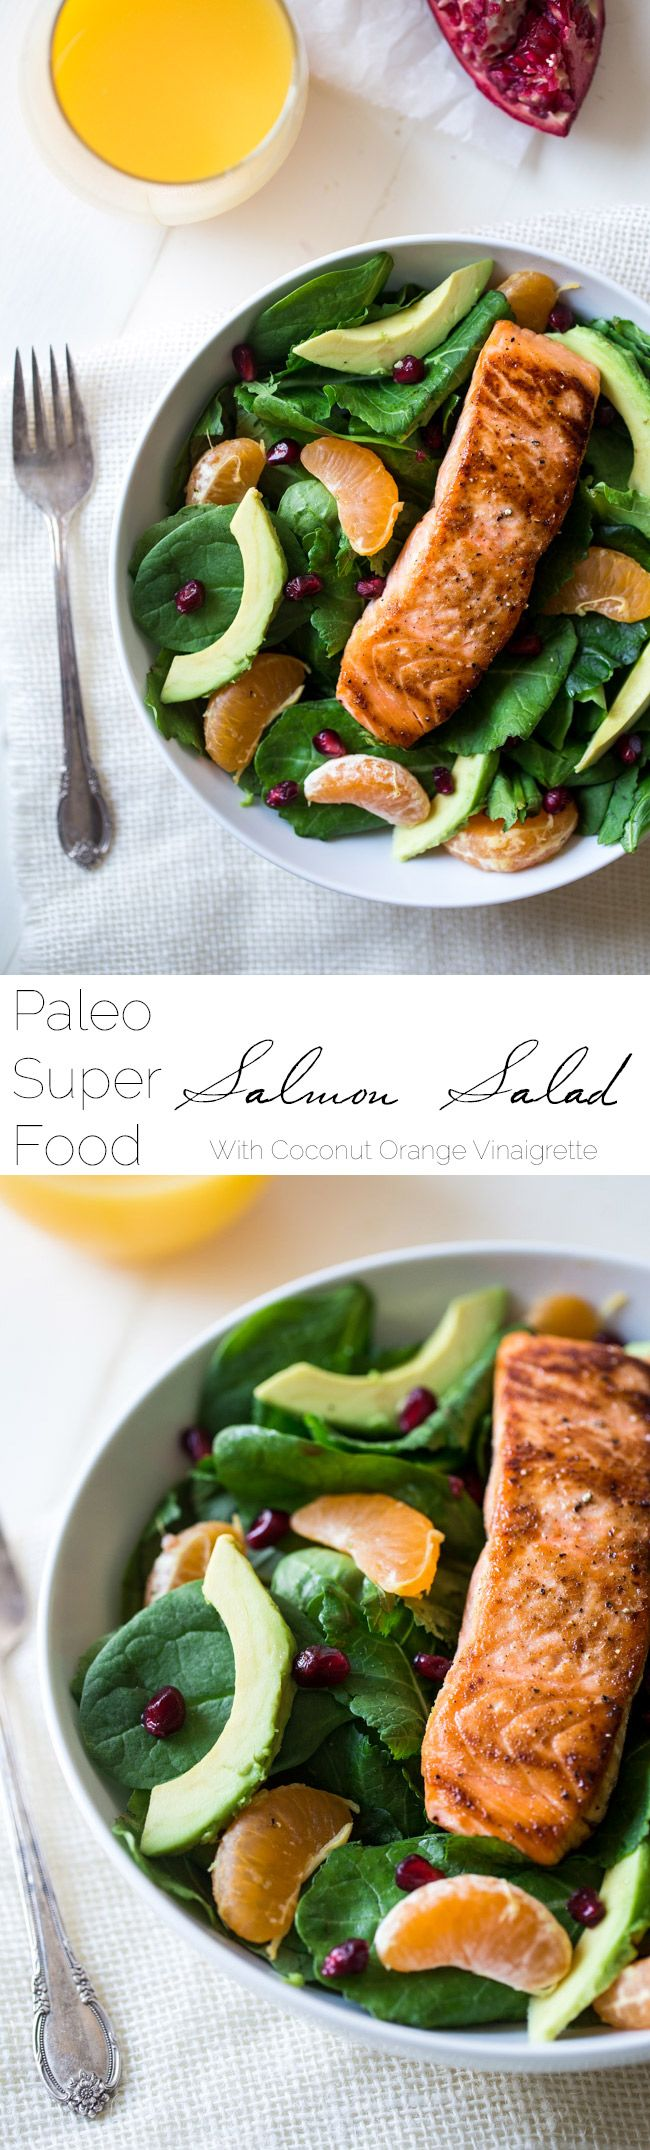 Superfood Kale & Salmon Salad With Coconut Orange Vinaigrette - A simple salad with 7 different superfoods that is so easy and paleo friendly! Perfect for a healthy, weeknight meal! | Foodfaithfitness.com | #recipe